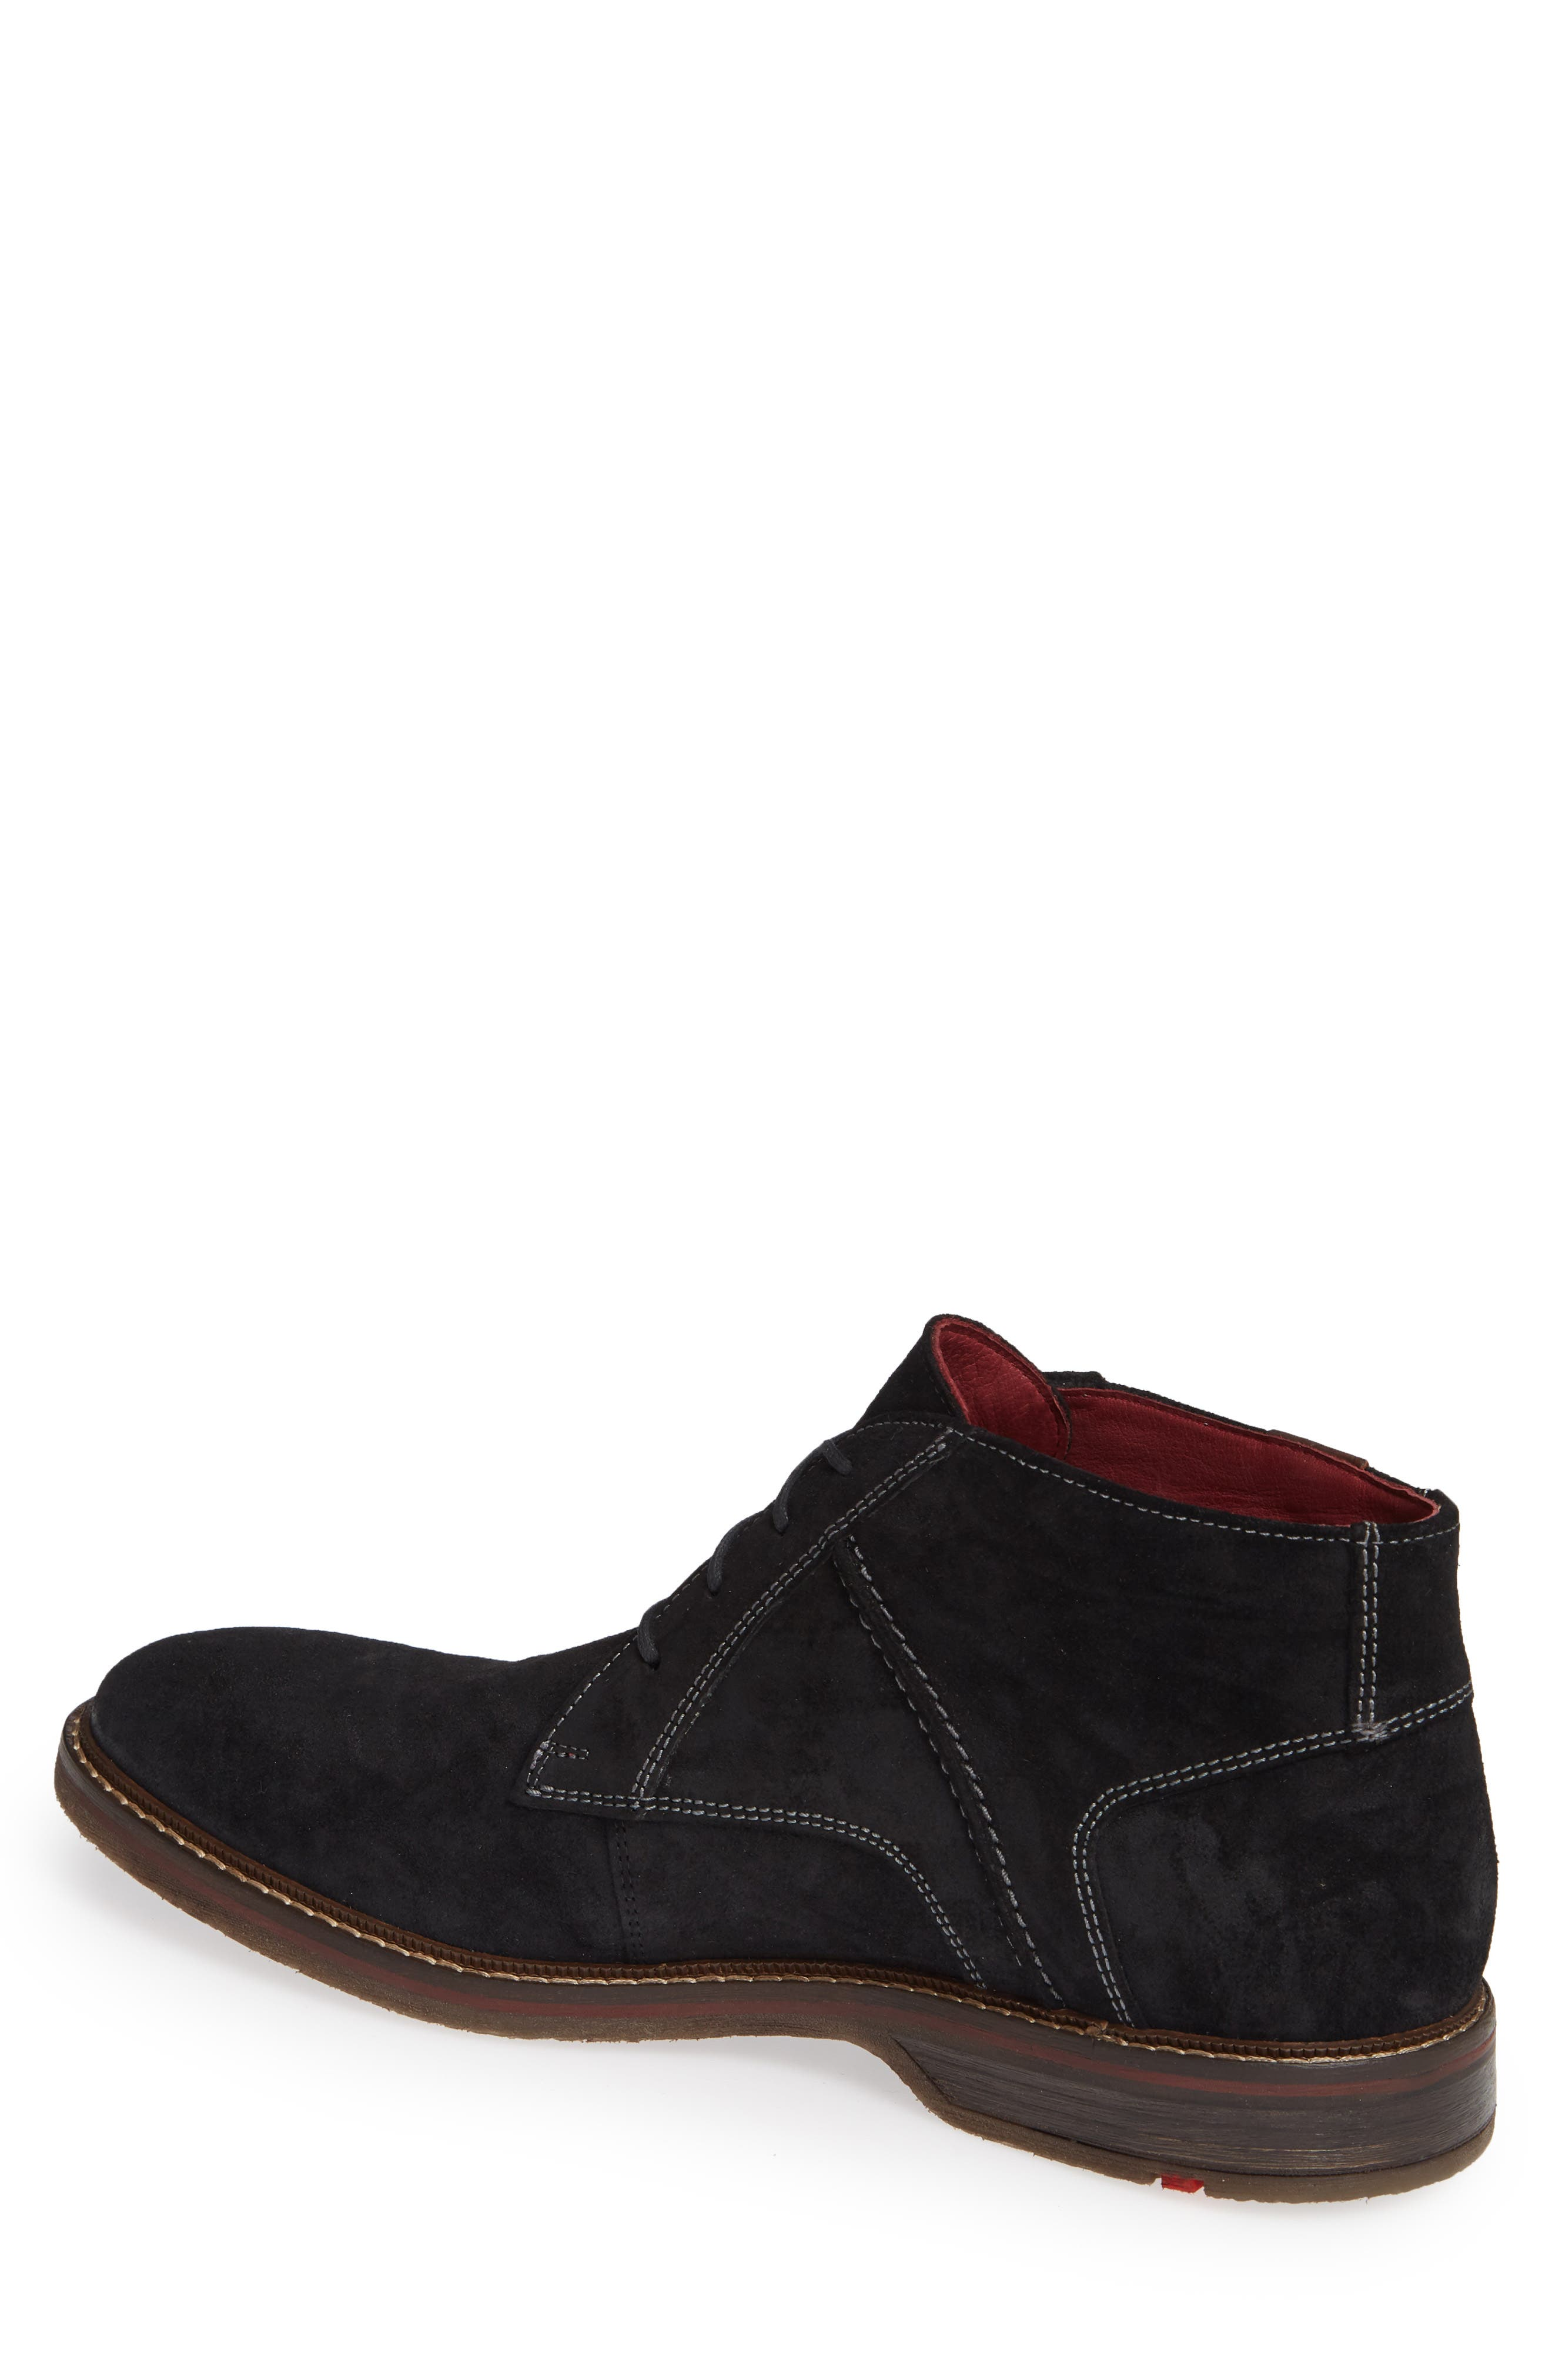 Dalbert Chukka Boot,                             Alternate thumbnail 2, color,                             BLACK/ KENIA SUEDE